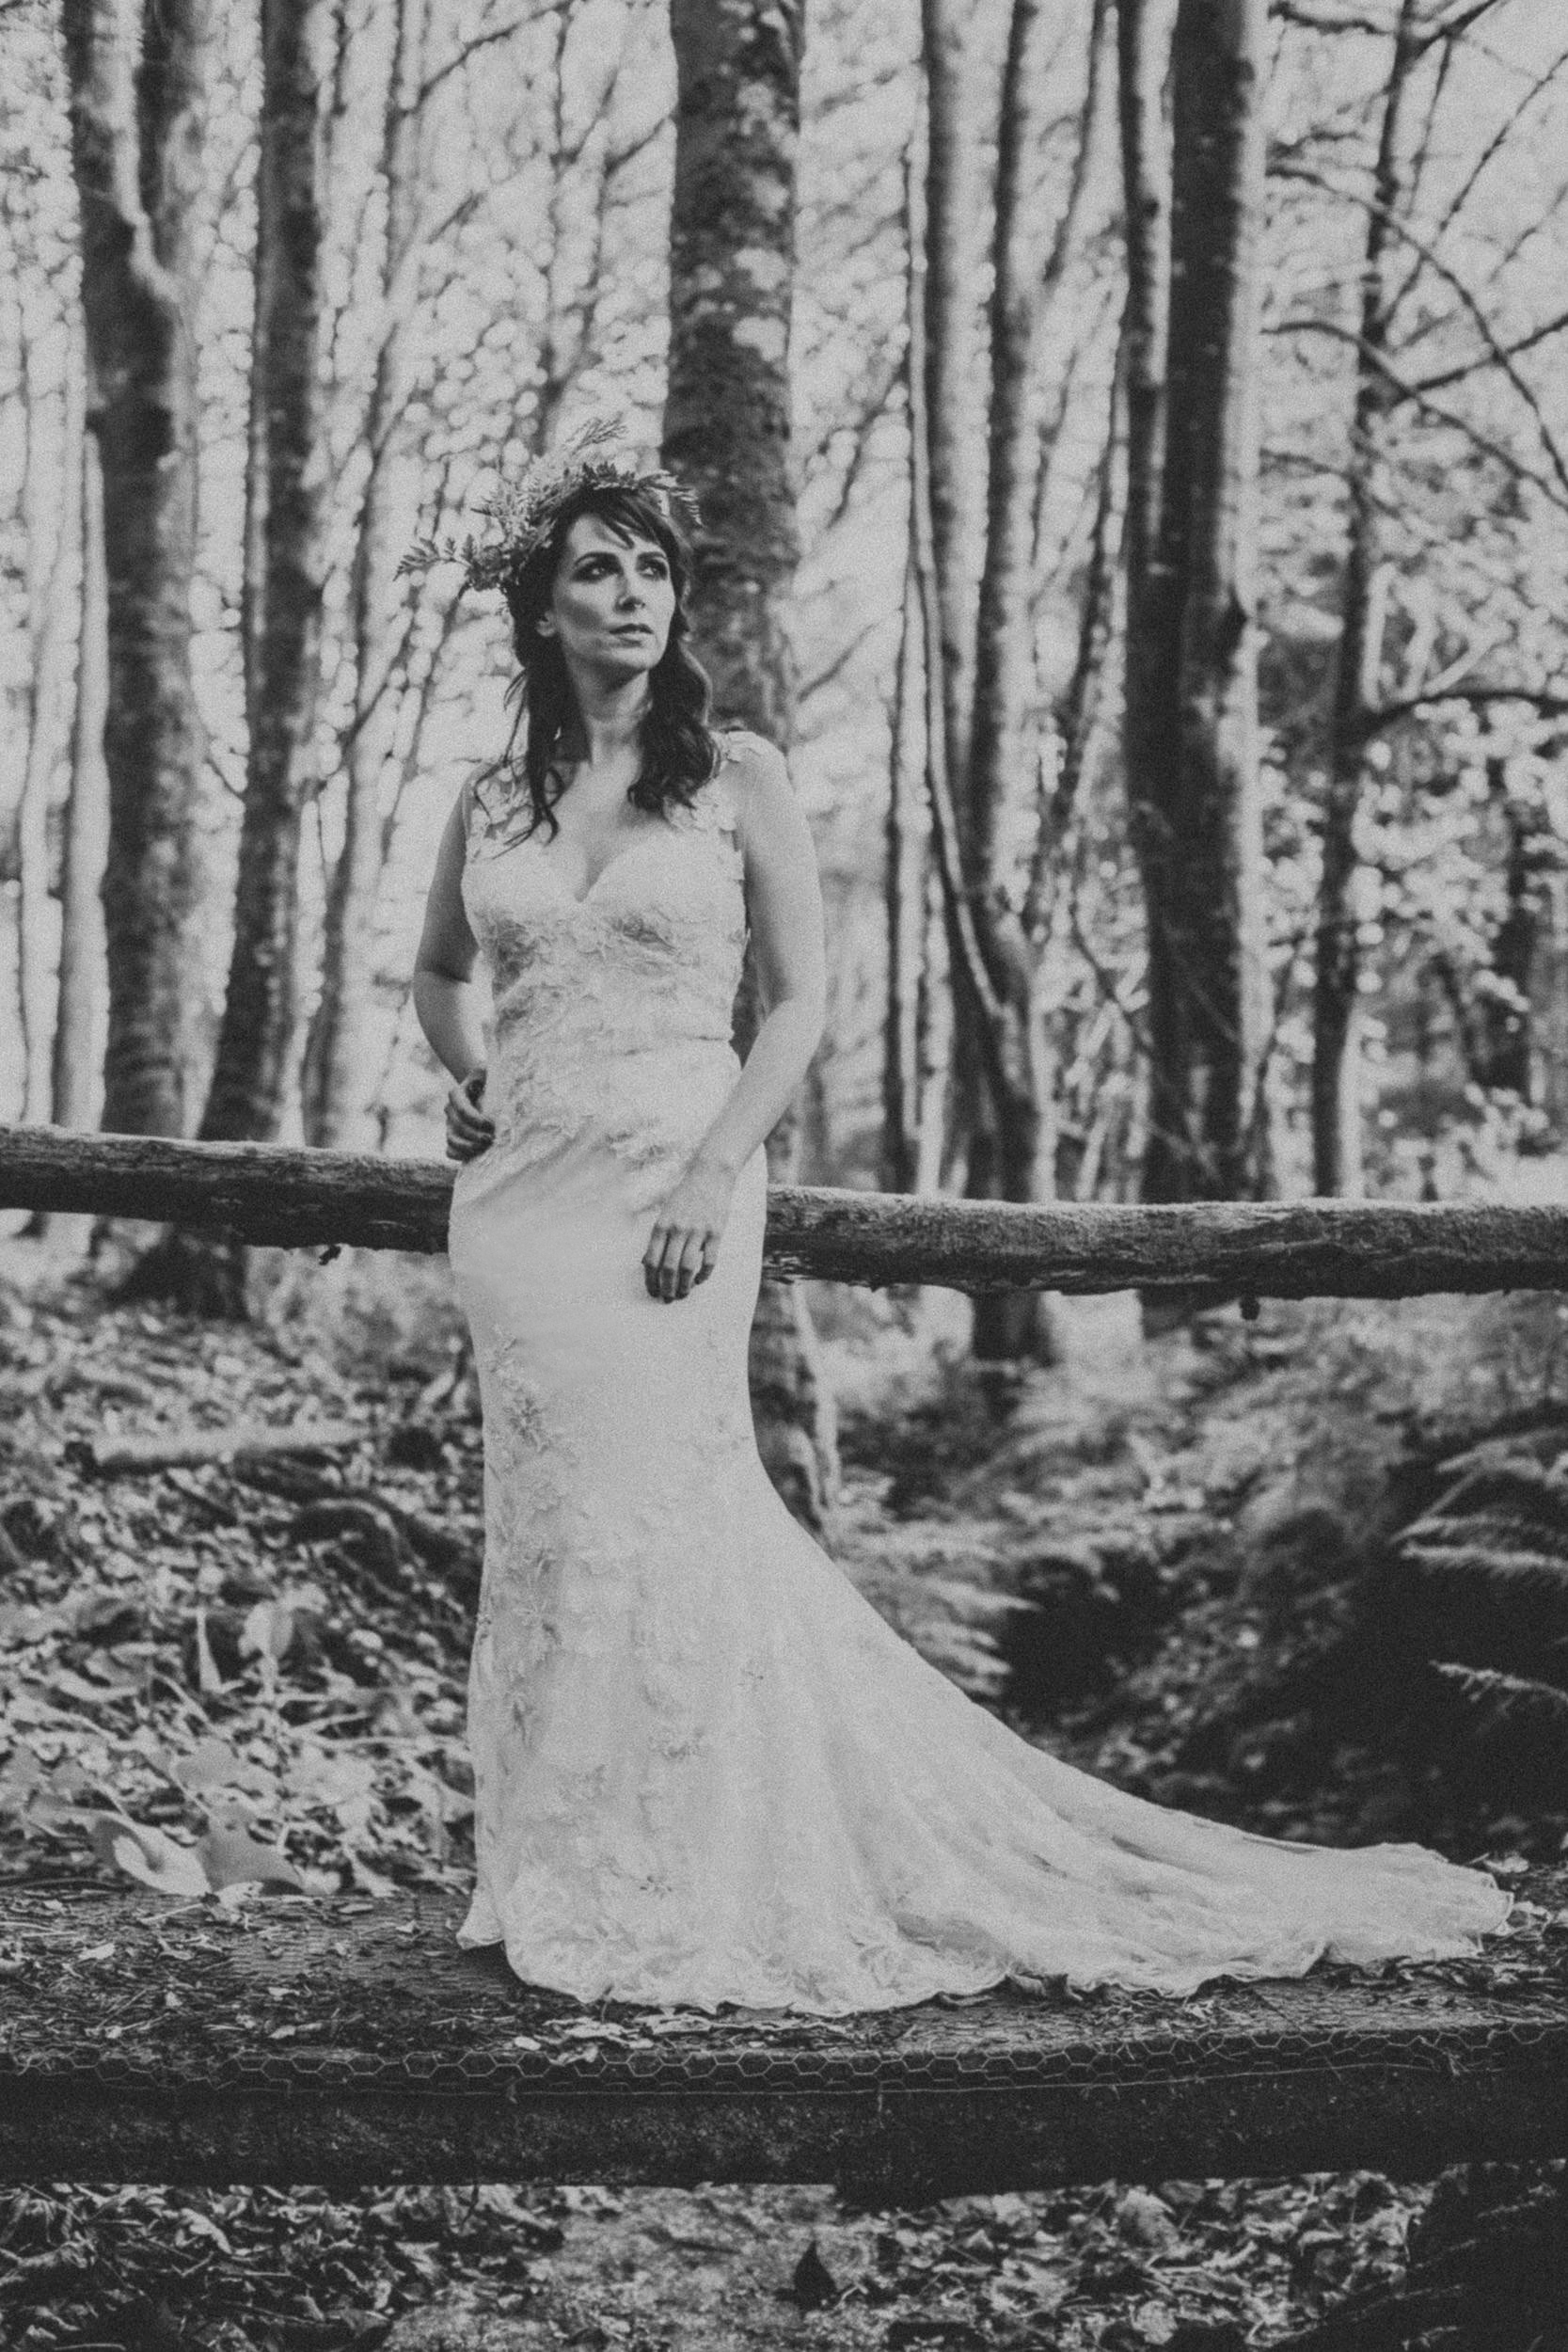 clairebyrnephotography-styled-shoot-huntingbrook-gardens-inspiration-weddings-woods-forest-68.jpg